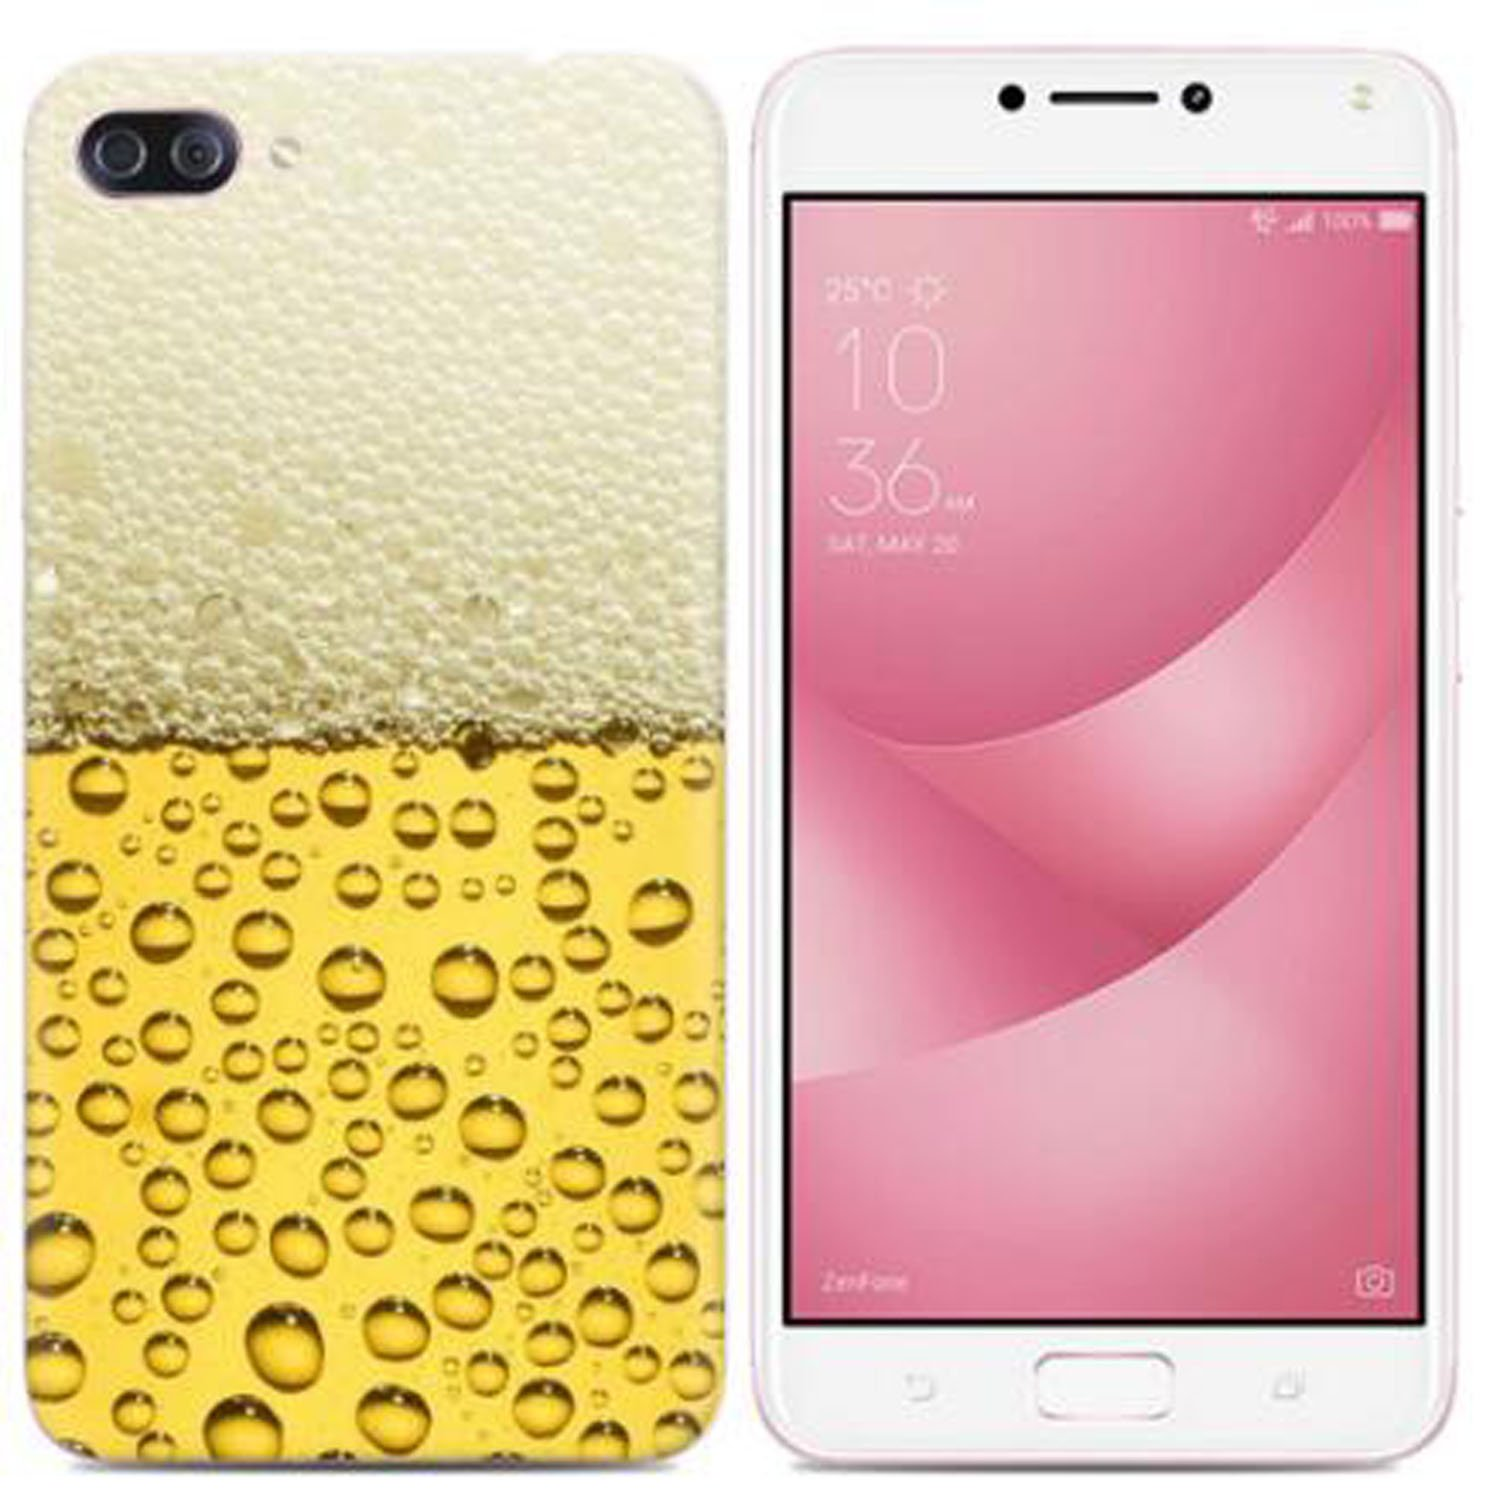 Yrlehoo For Asus Zenfone 4 Max Zc520kl 5 2 Inch Soft Silicone Case For Asus Zenfone 4 Max Zc520kl 5 2 Inch Case Cover Etui Protect Backcase Protection Beer Buy Online In Botswana At